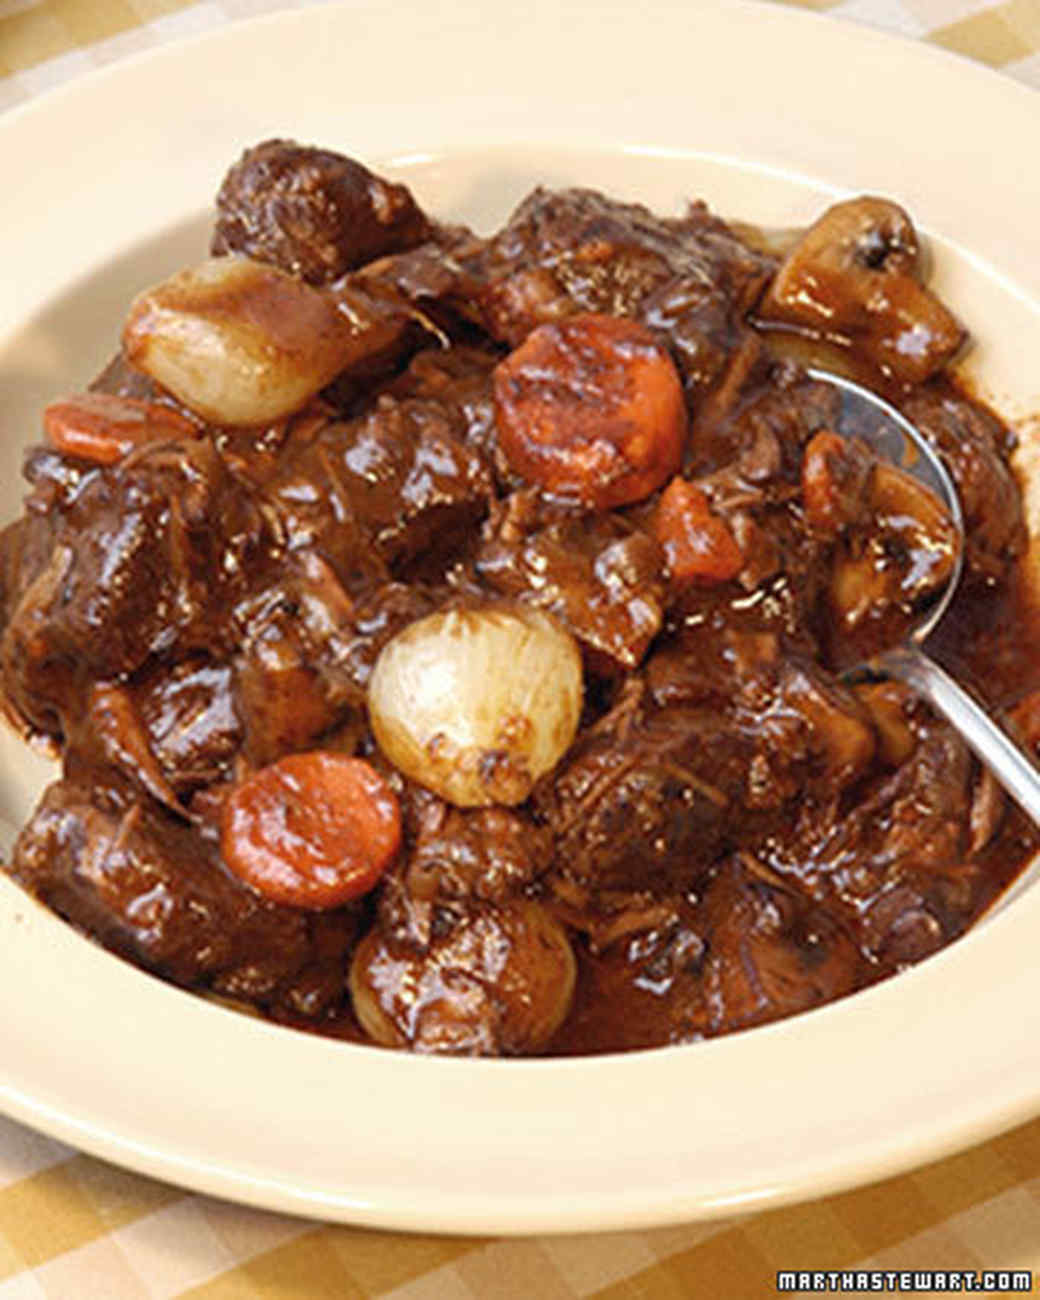 Boeuf Bourguignon Recipe & Video | Martha Stewart